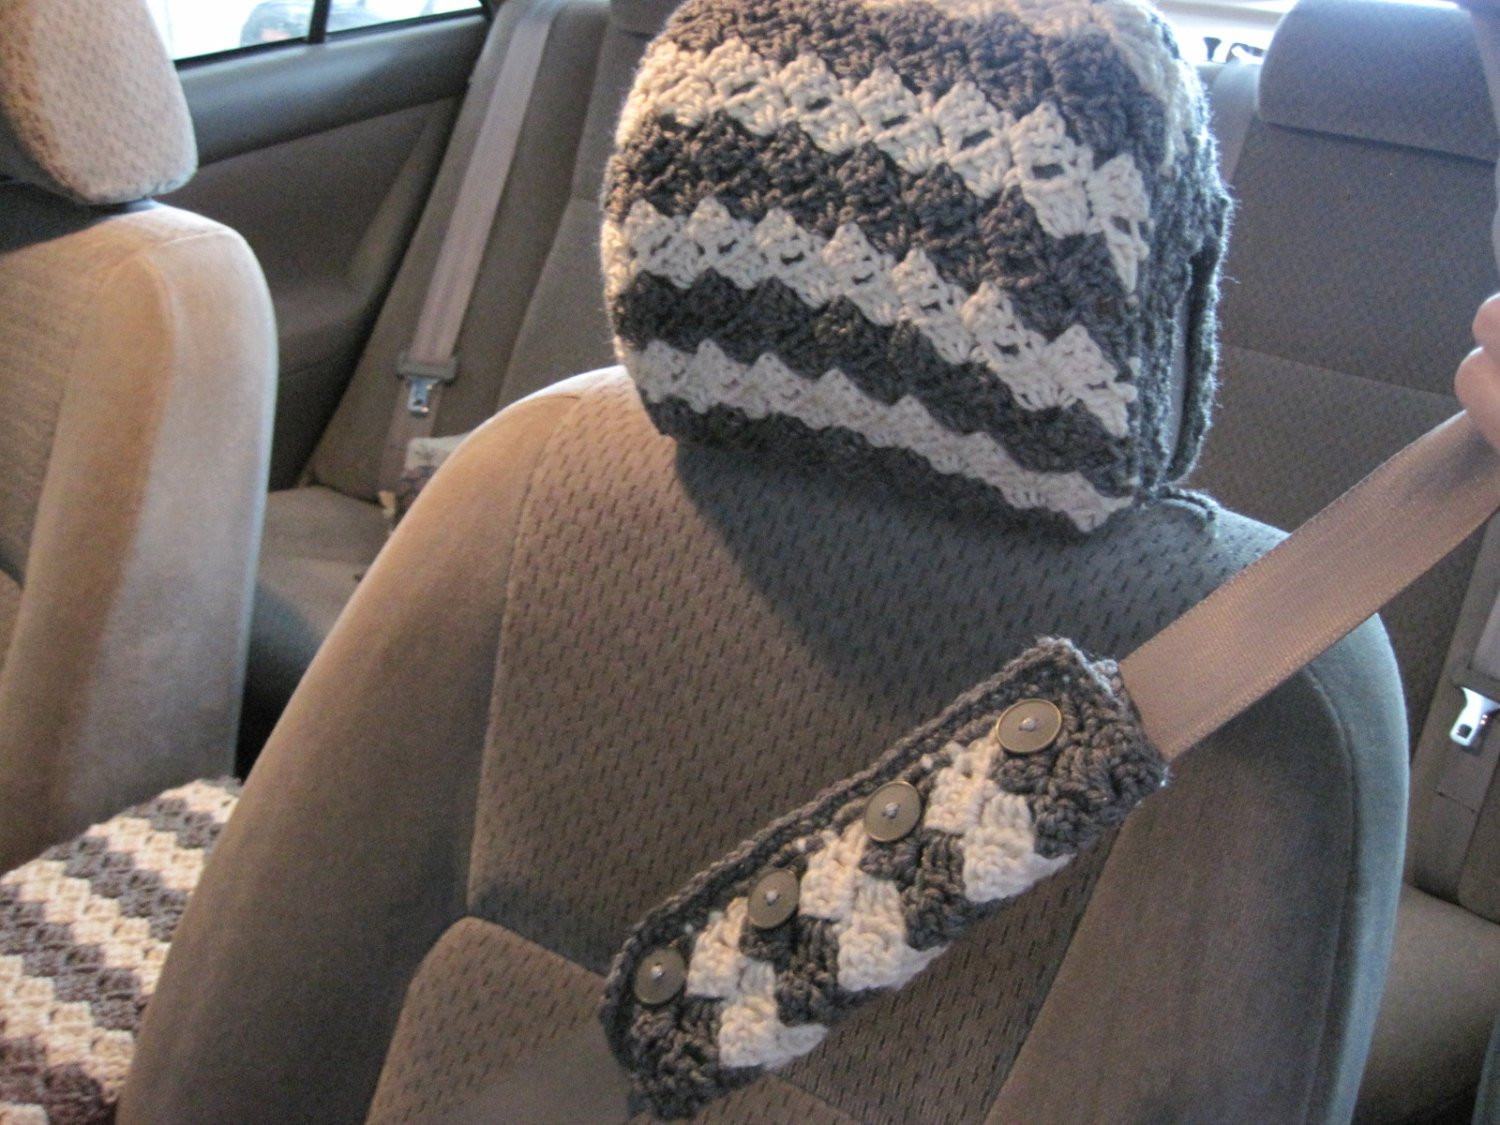 Best Of Crochet Car Front Seat Headrest Cover Grey Heather Aran Crochet Seat Cover Of Beautiful Crochet Car Front Seat Cover Aran Grey Heather Ccfsc1a Crochet Seat Cover